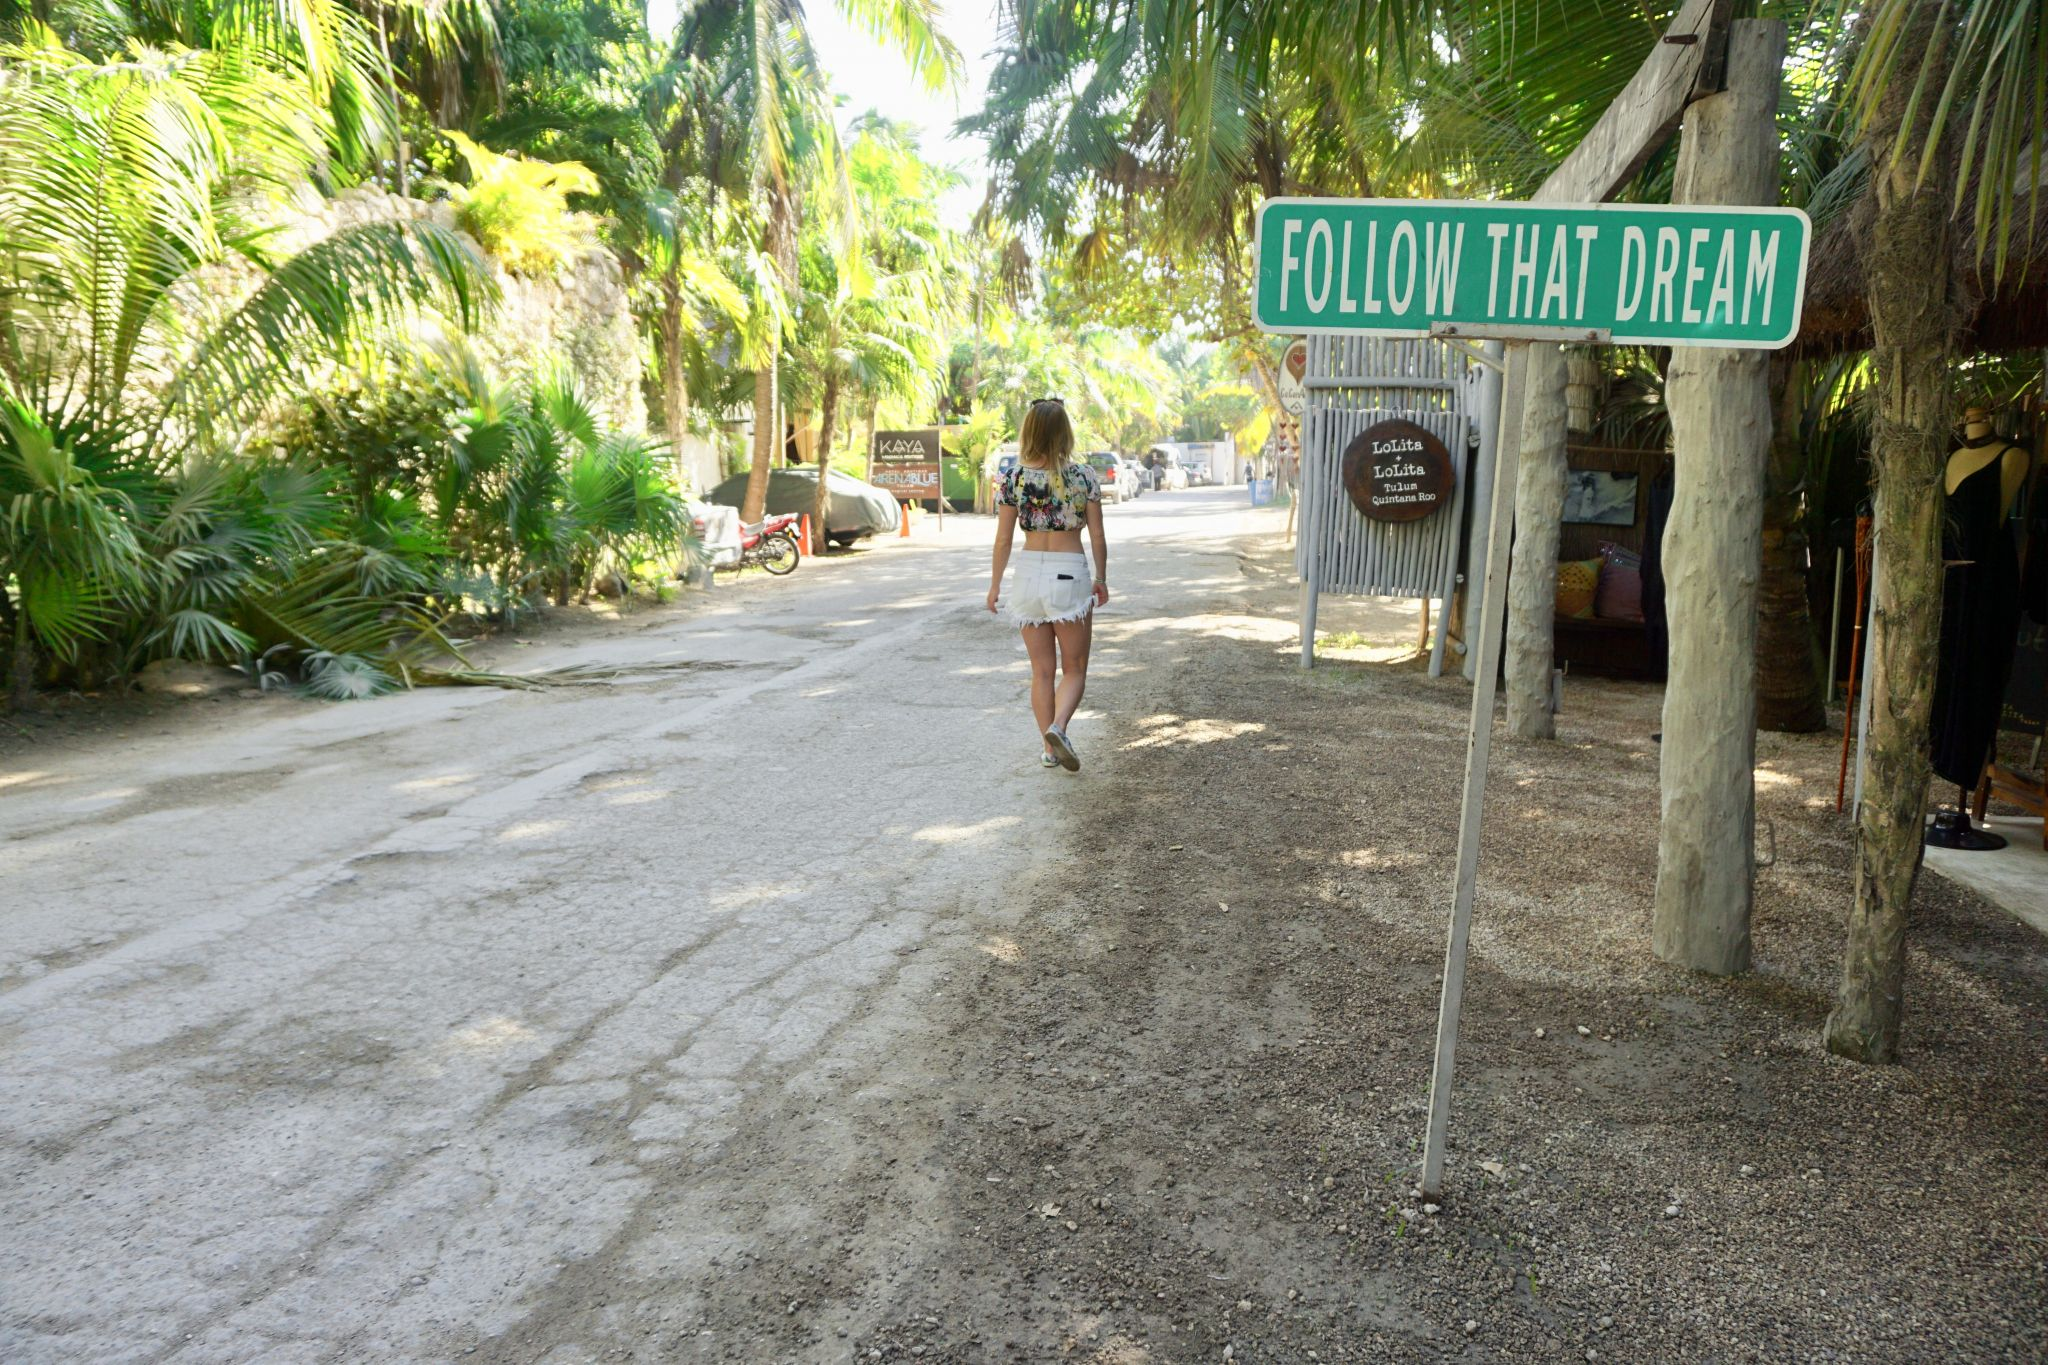 What's Tulum really like